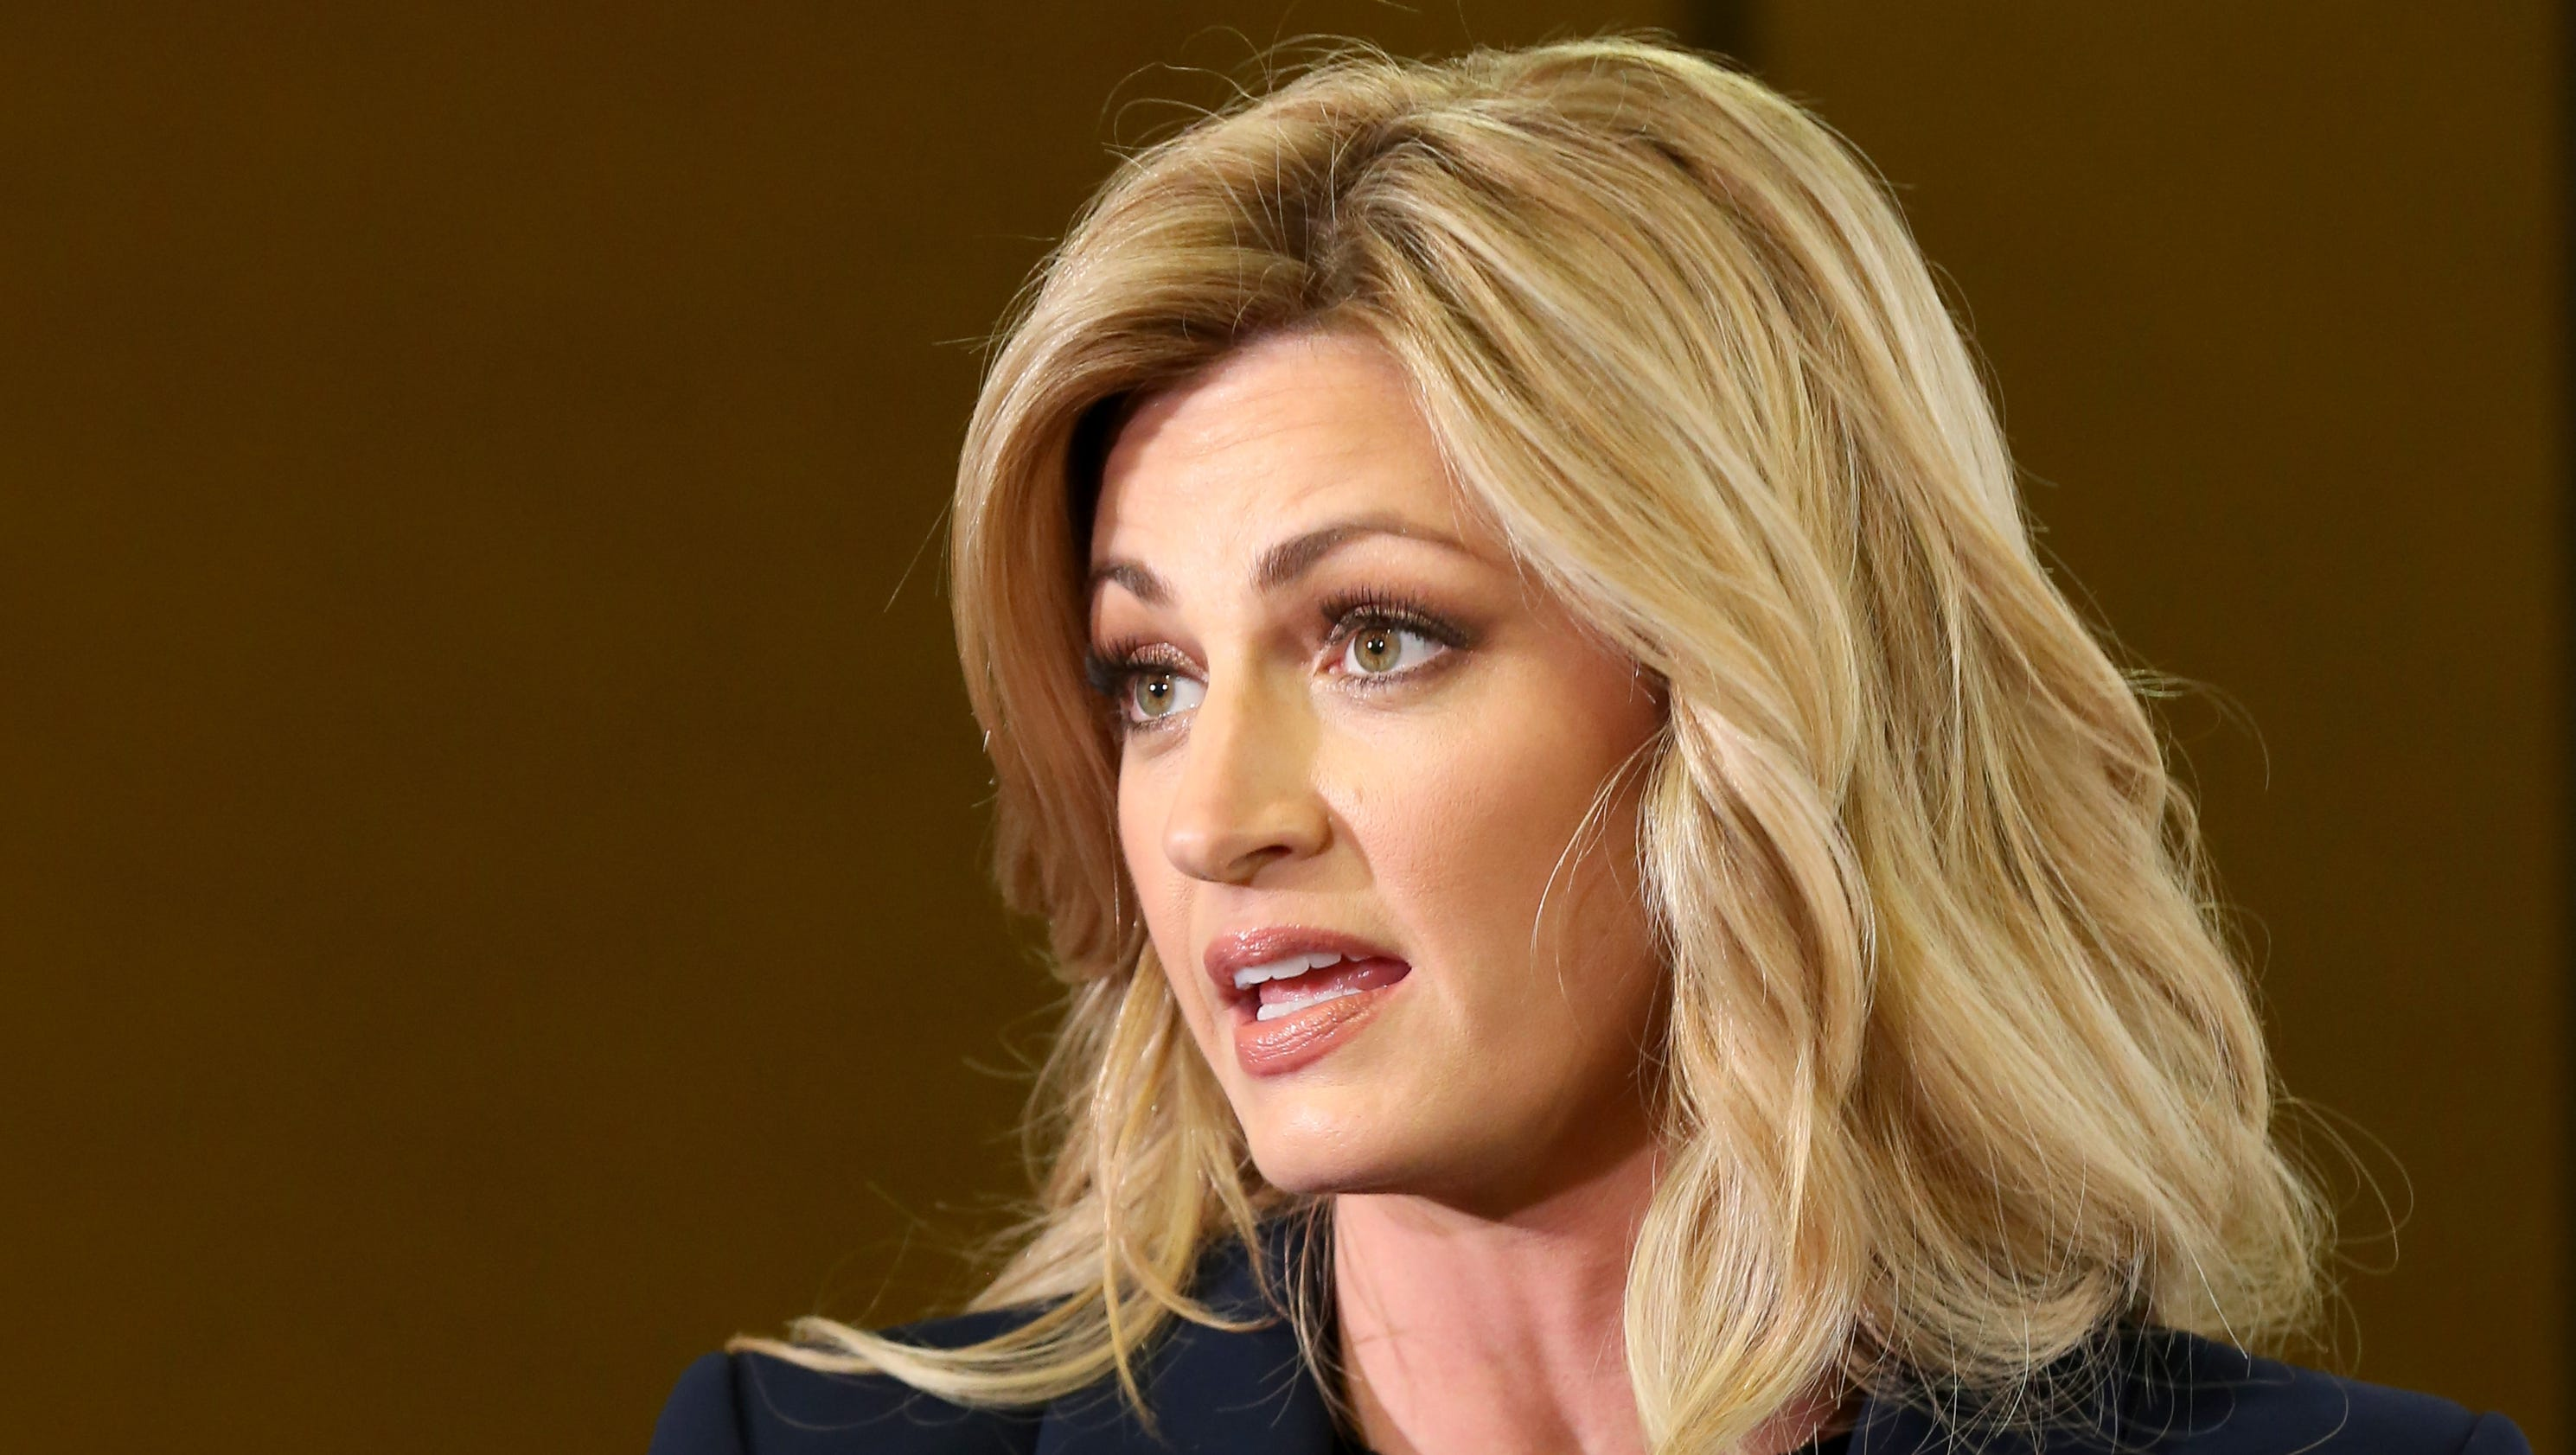 Erin Andrews civil trial to begin Monday